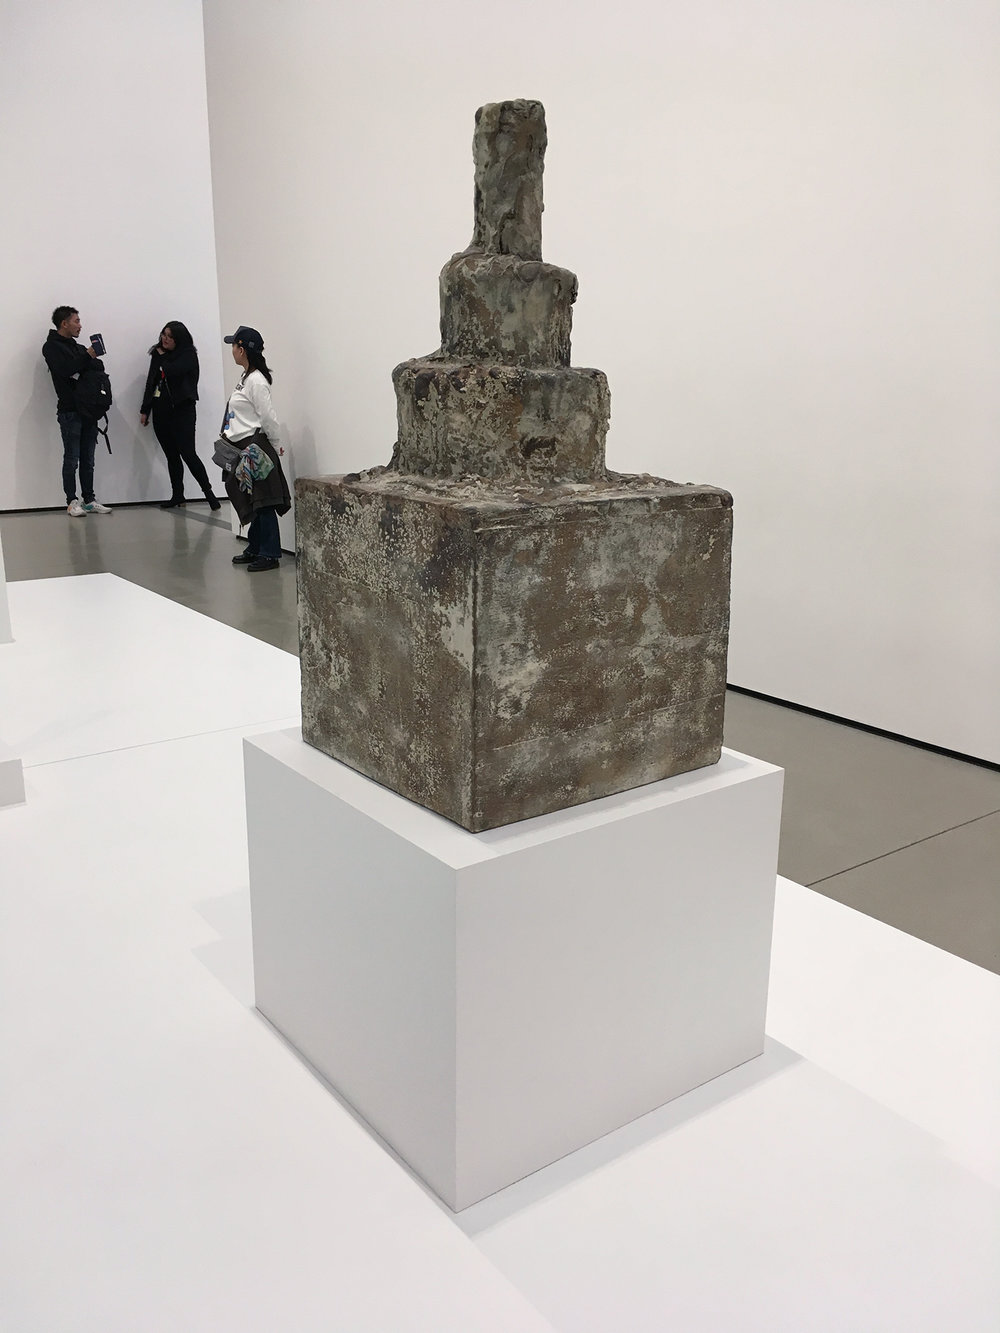 Cy Twombly, Untitled (The Mathematical Dream of Ashurbanipal), 2000-09, Bronze